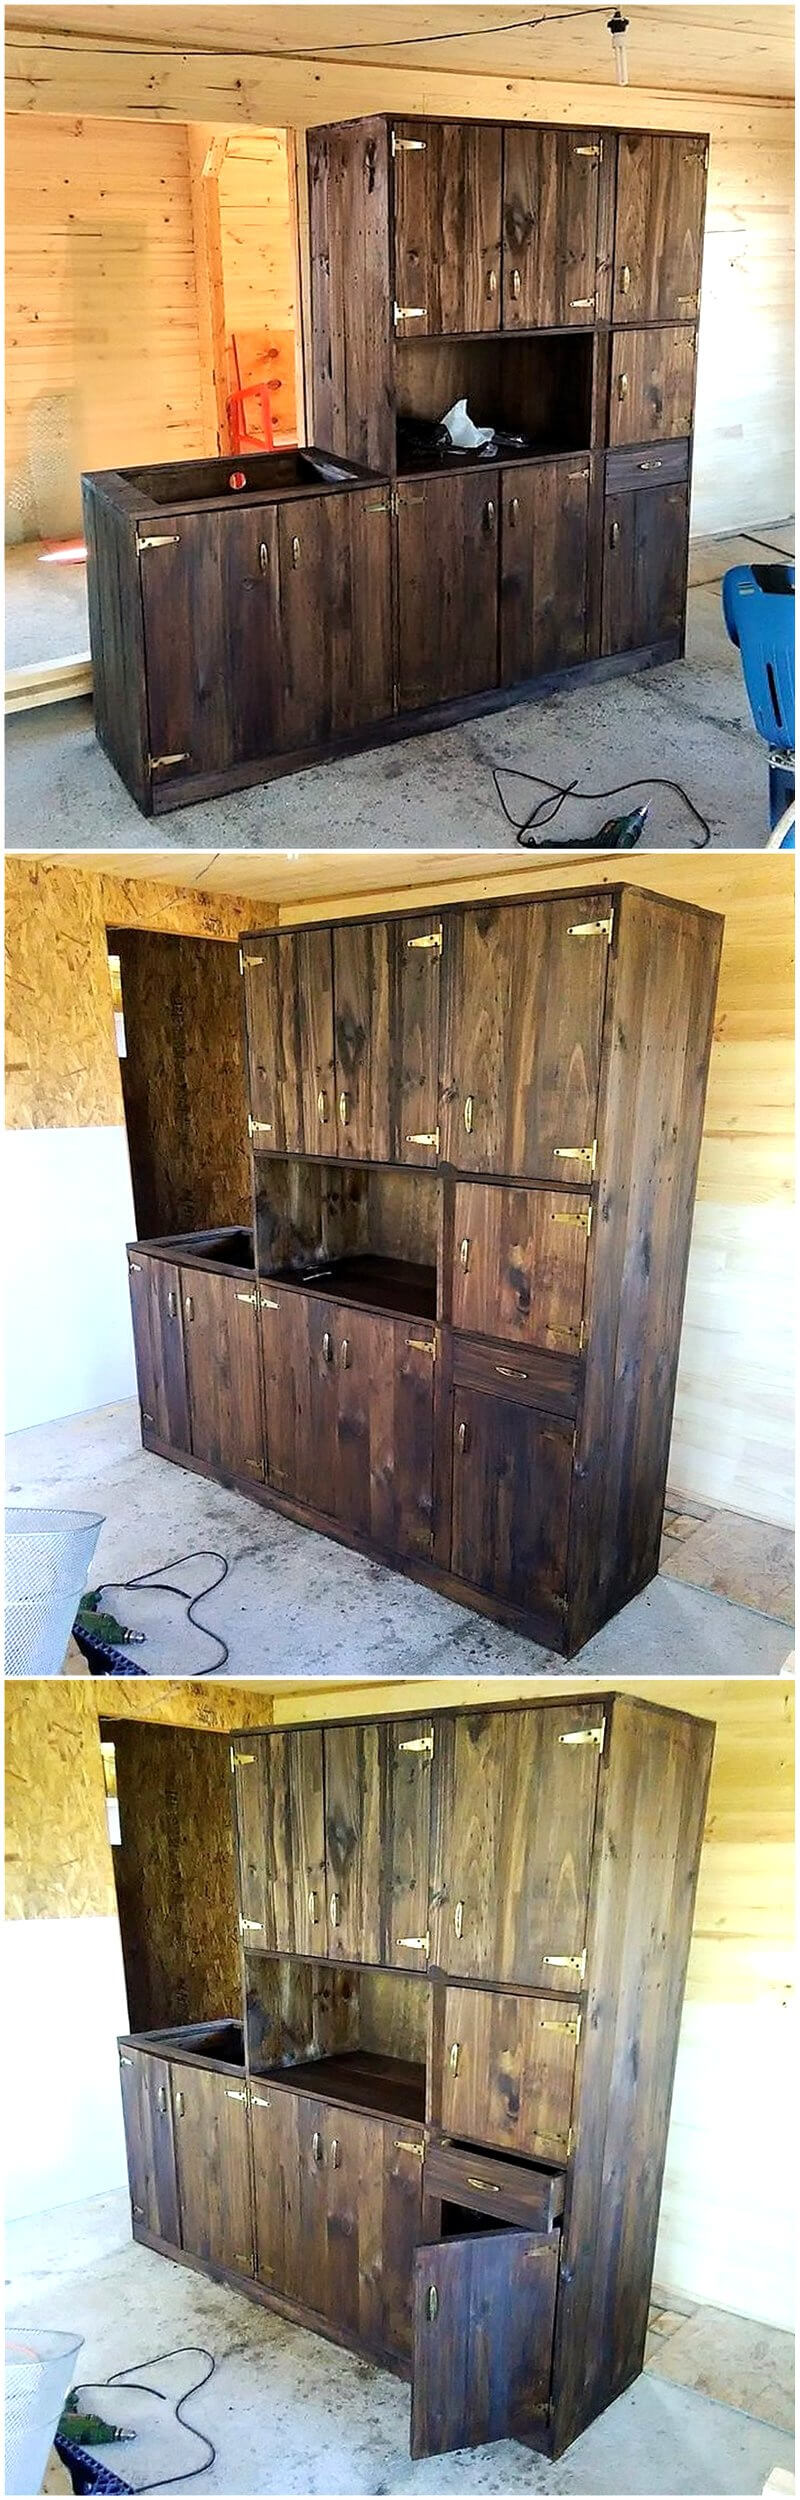 Reusing Ideas For Old Used Dumped Pallets Wood Wood Pallet Furniture # Muebles Pailets